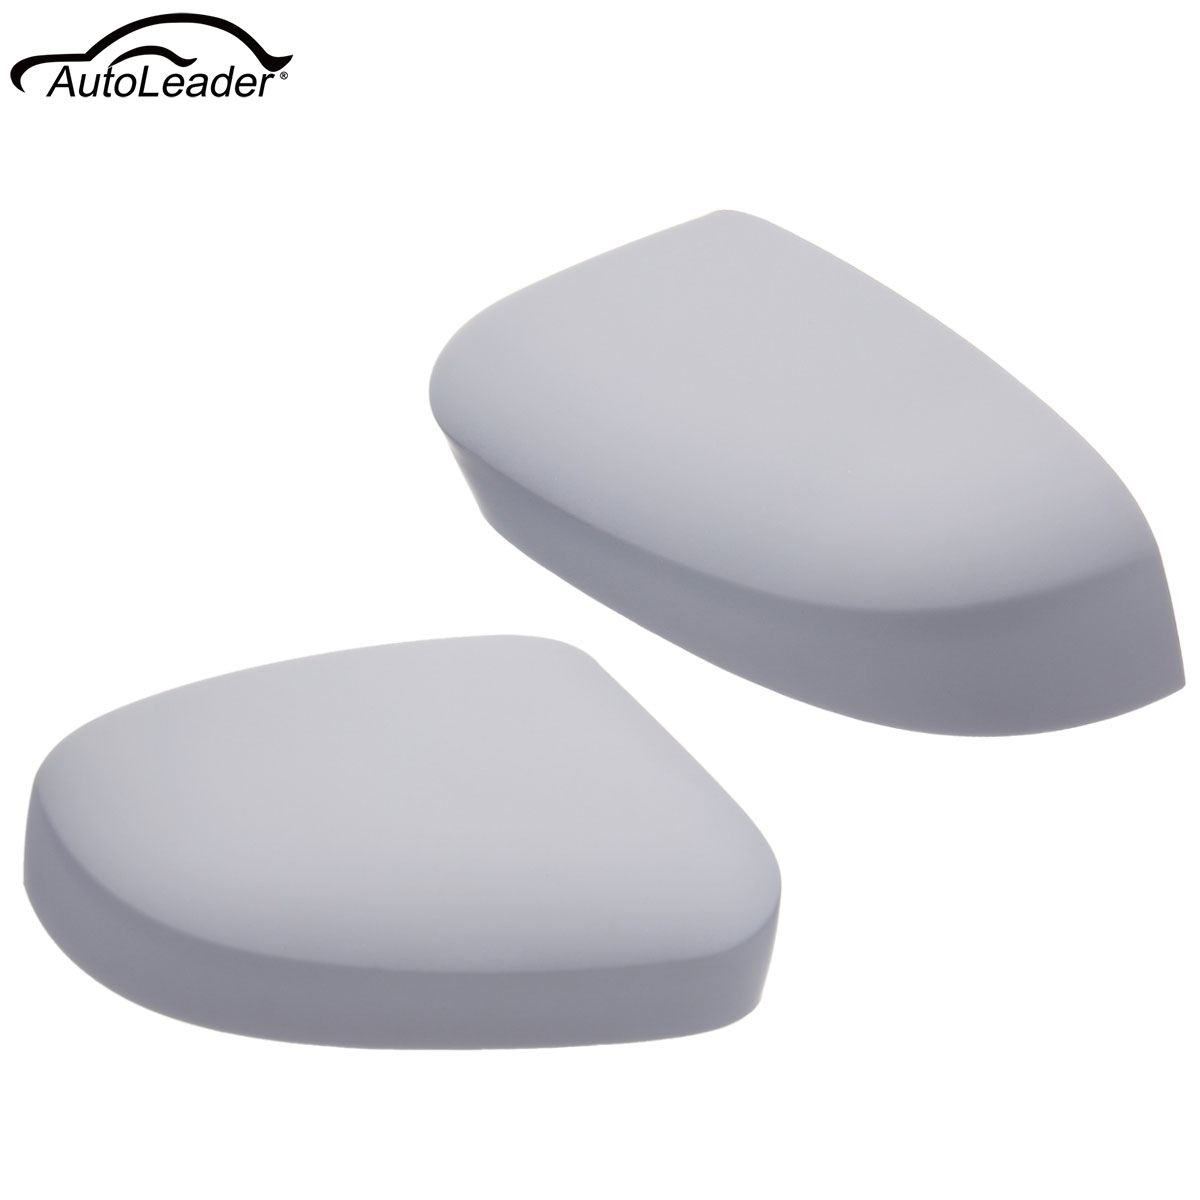 1Pc Left or Right Side Rearview Door Mirror Wing Cover Casing Cap for Ford for Focus 2004 05 06 07 08 09 10 11 12 13 14 15 16 17